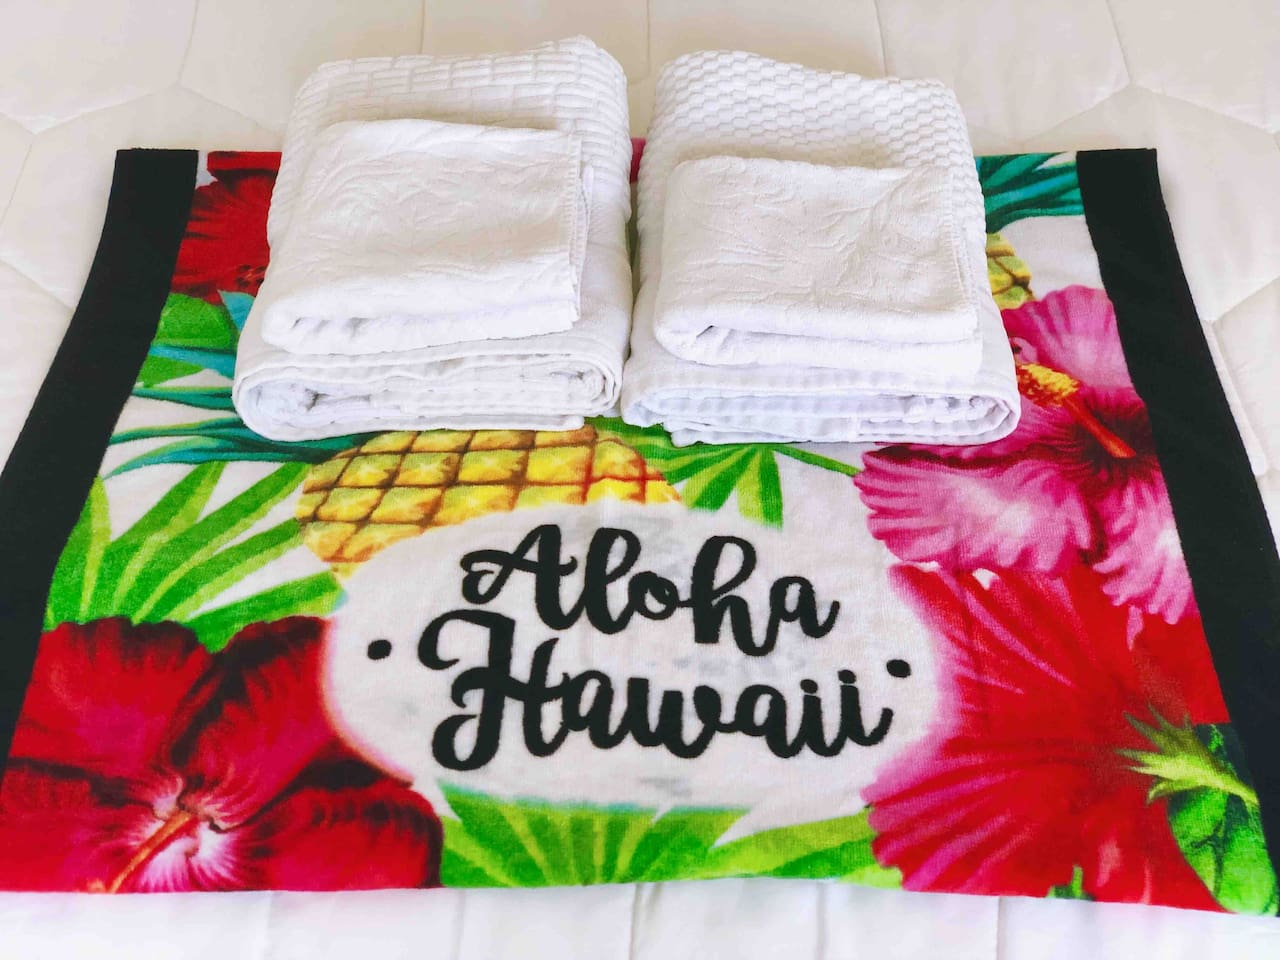 Aloha & welcome to our place.